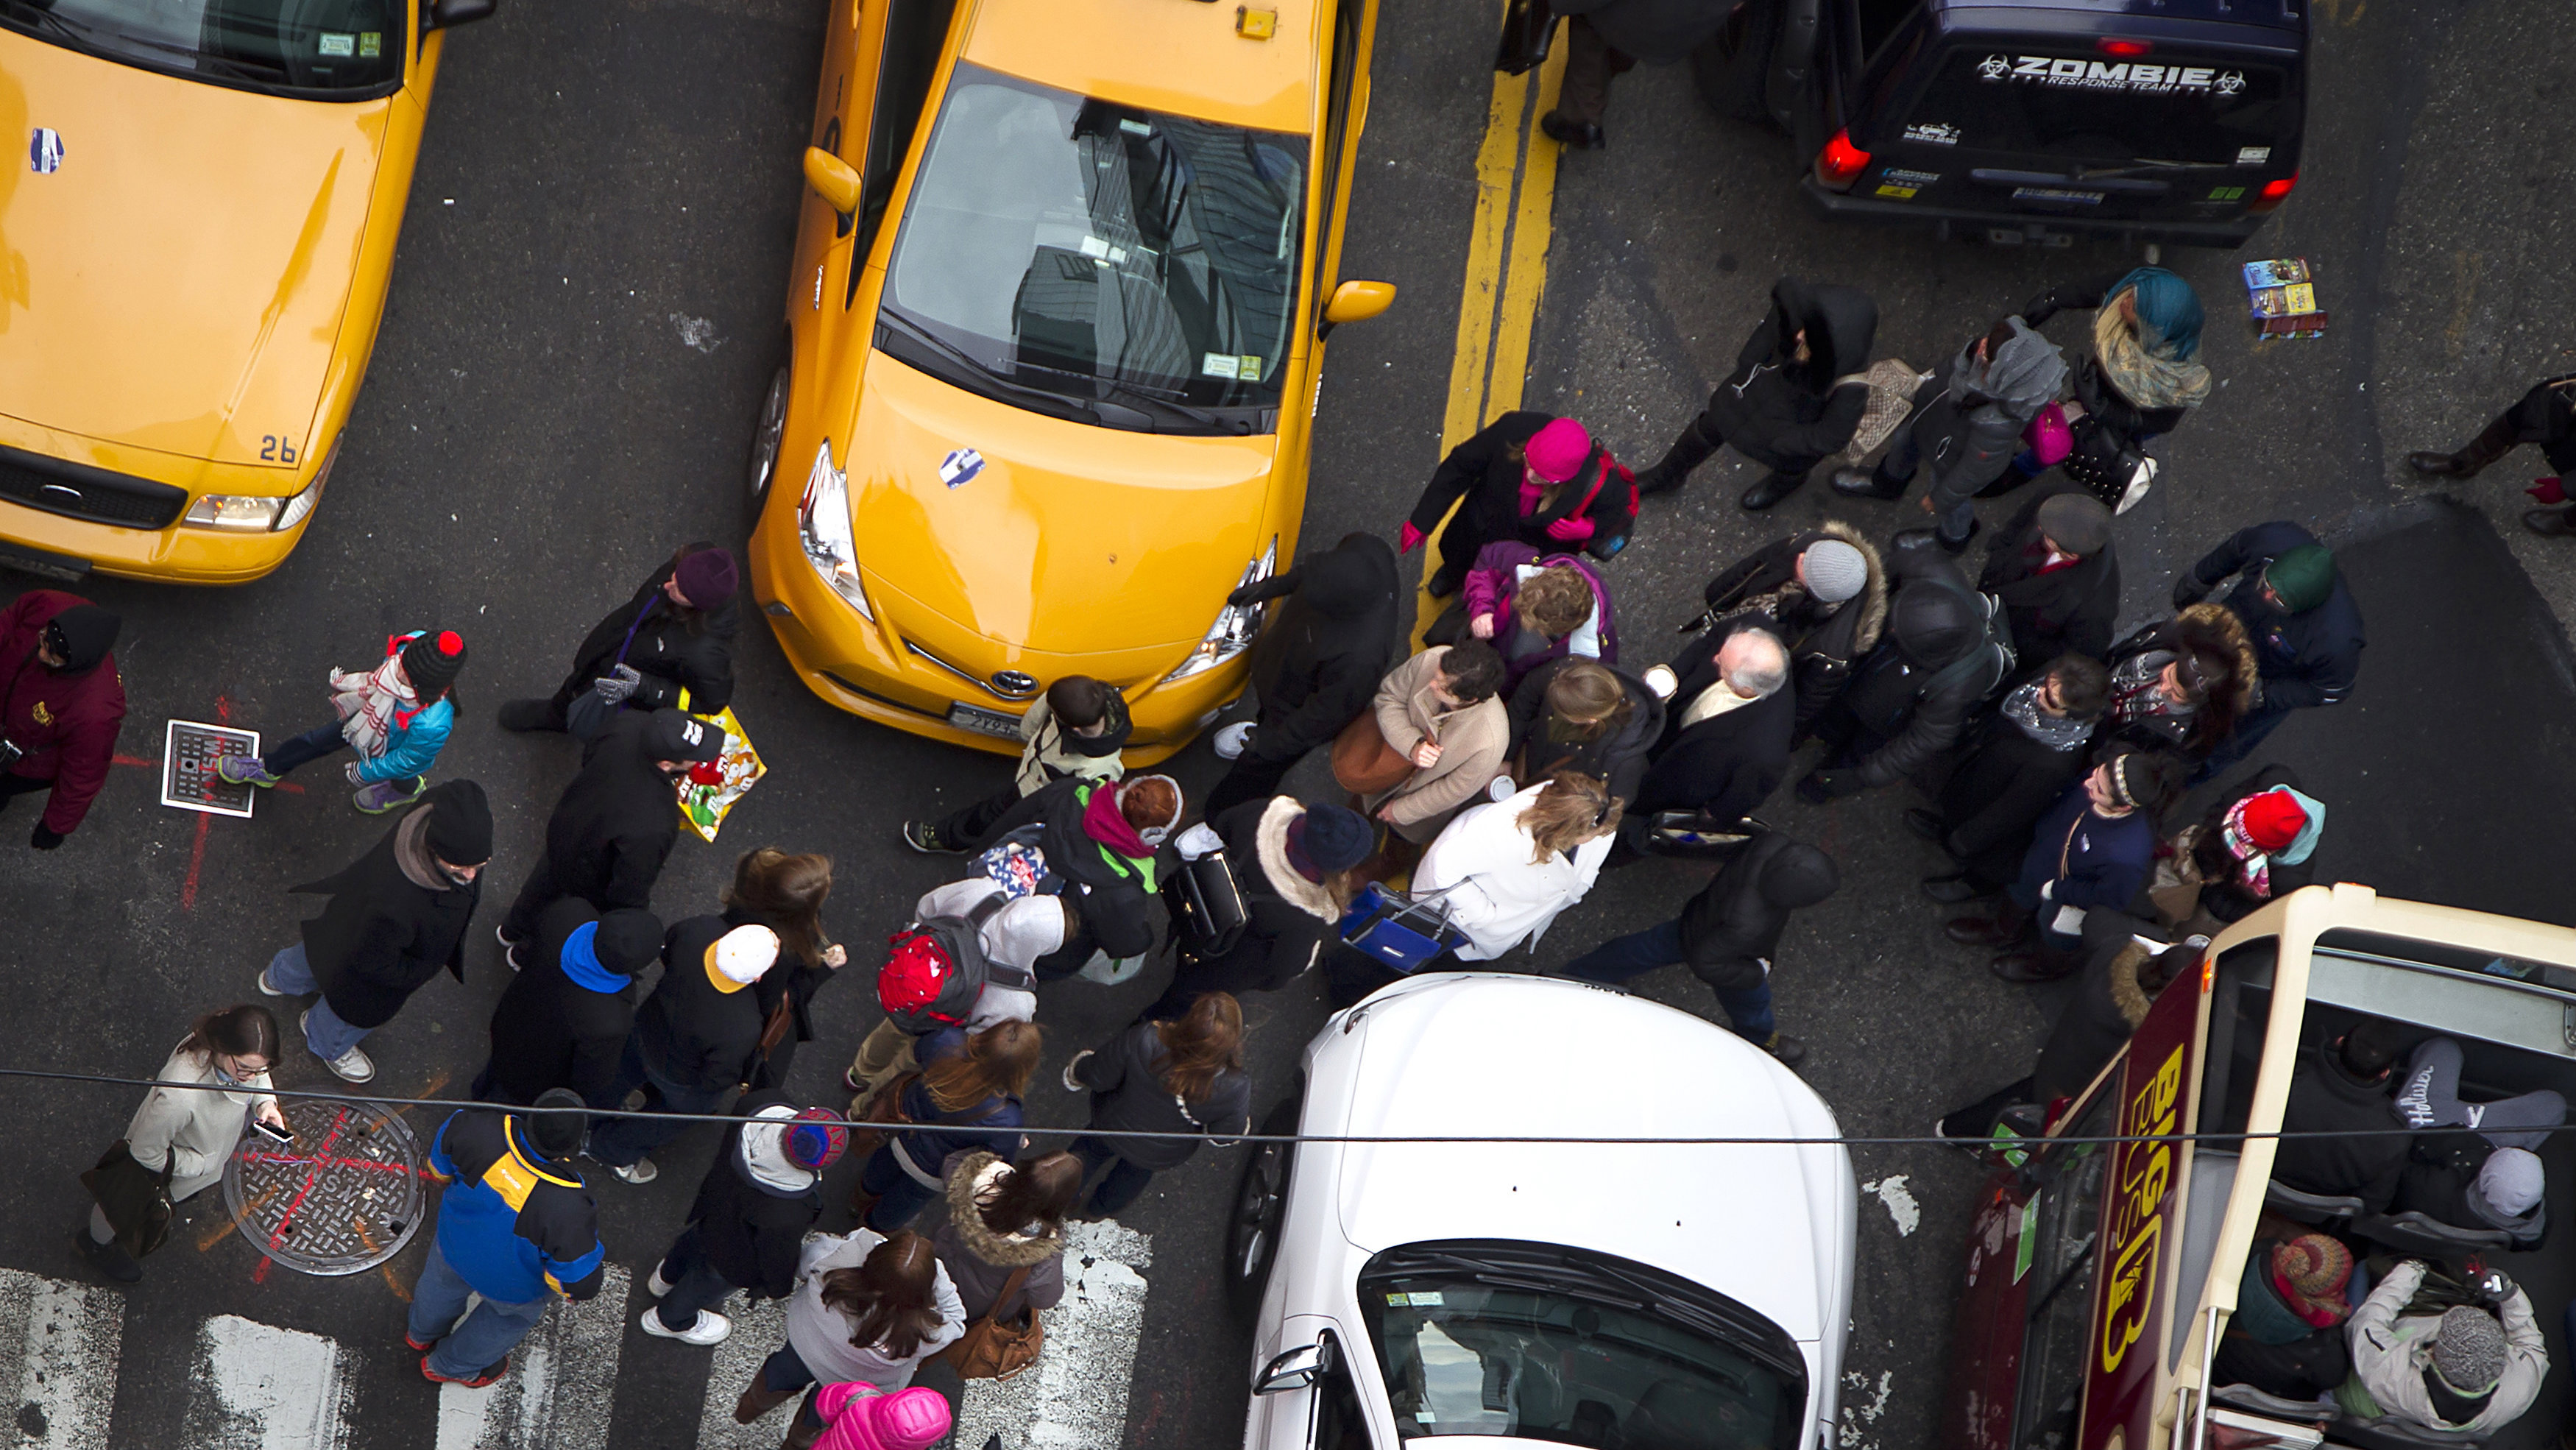 Pedestrians make their way though traffic in Times Square in New York December 30, 2014.